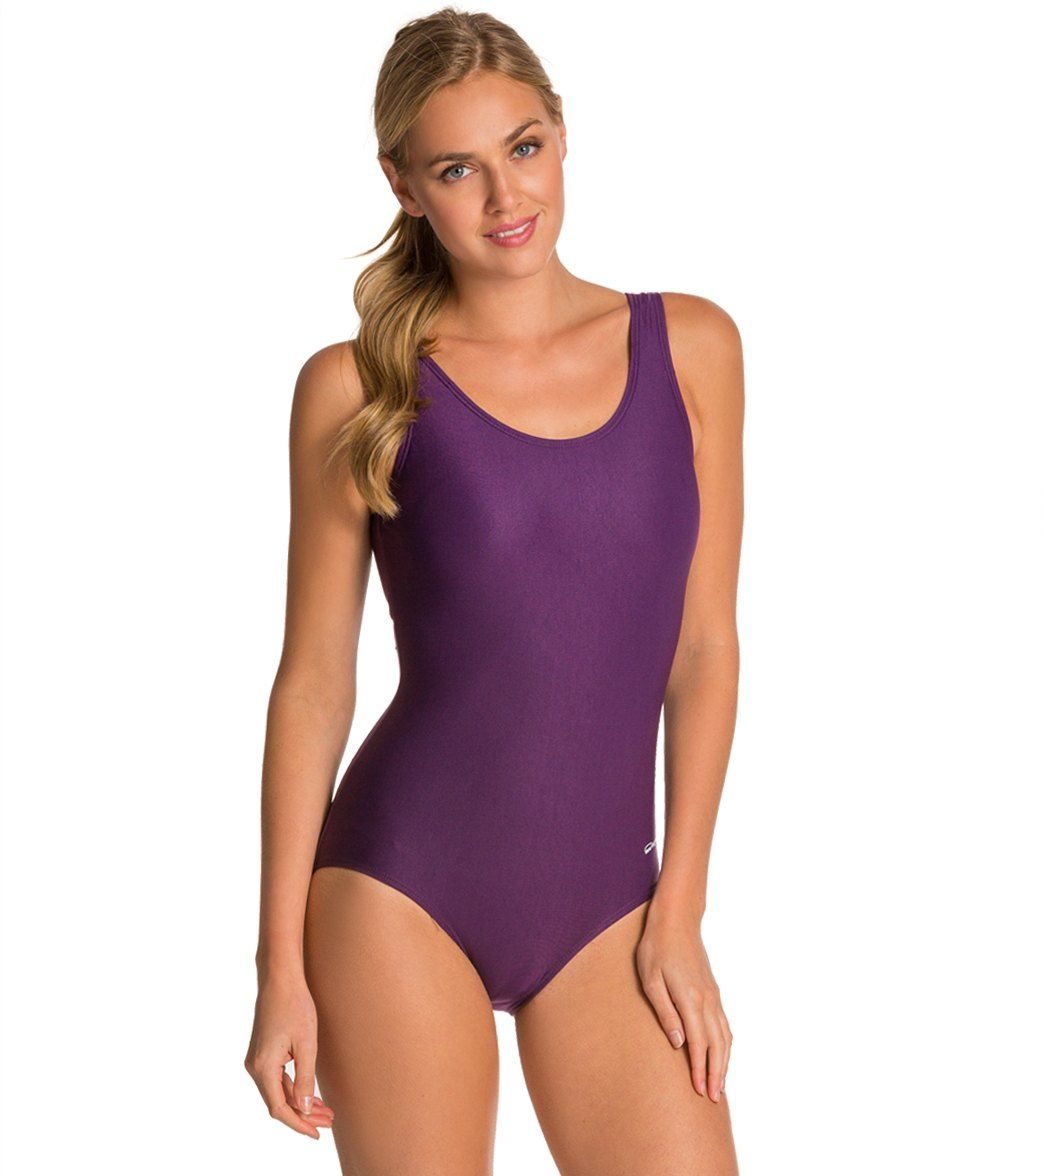 bf00f81d460 Waterpro Solid U-Back Conservative Fitness Swimsuit | fashion ...